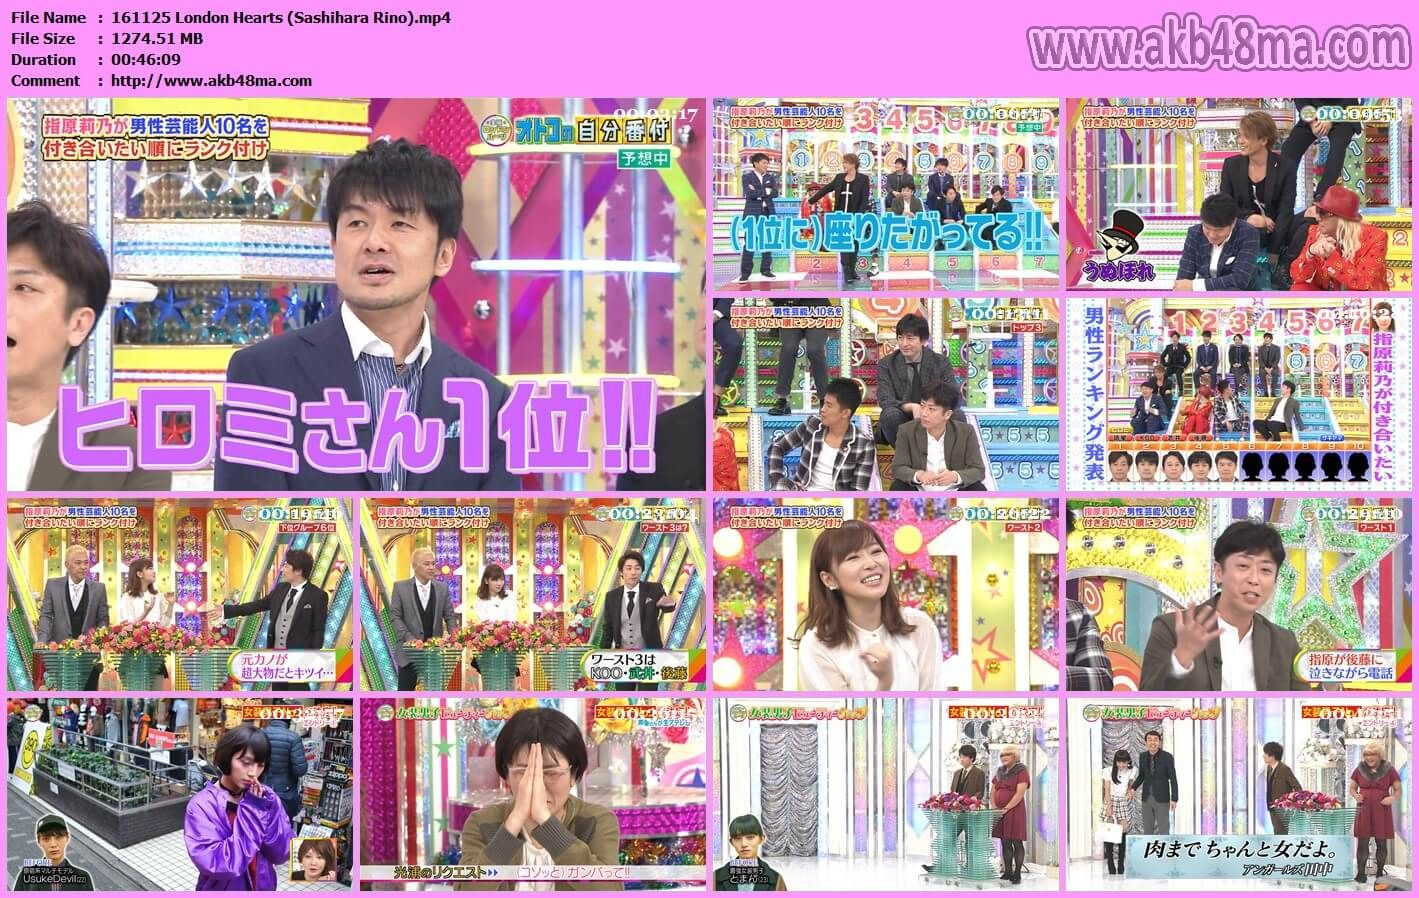 バラエティ番組161125 ロンドンハーツ Mp4 161125 London Hearts Sashihara Rino Alfafile161125 London Hearts Rar Alfafile Note Akb48ma Com Please Update Book バラエティ番組 番組 劇場